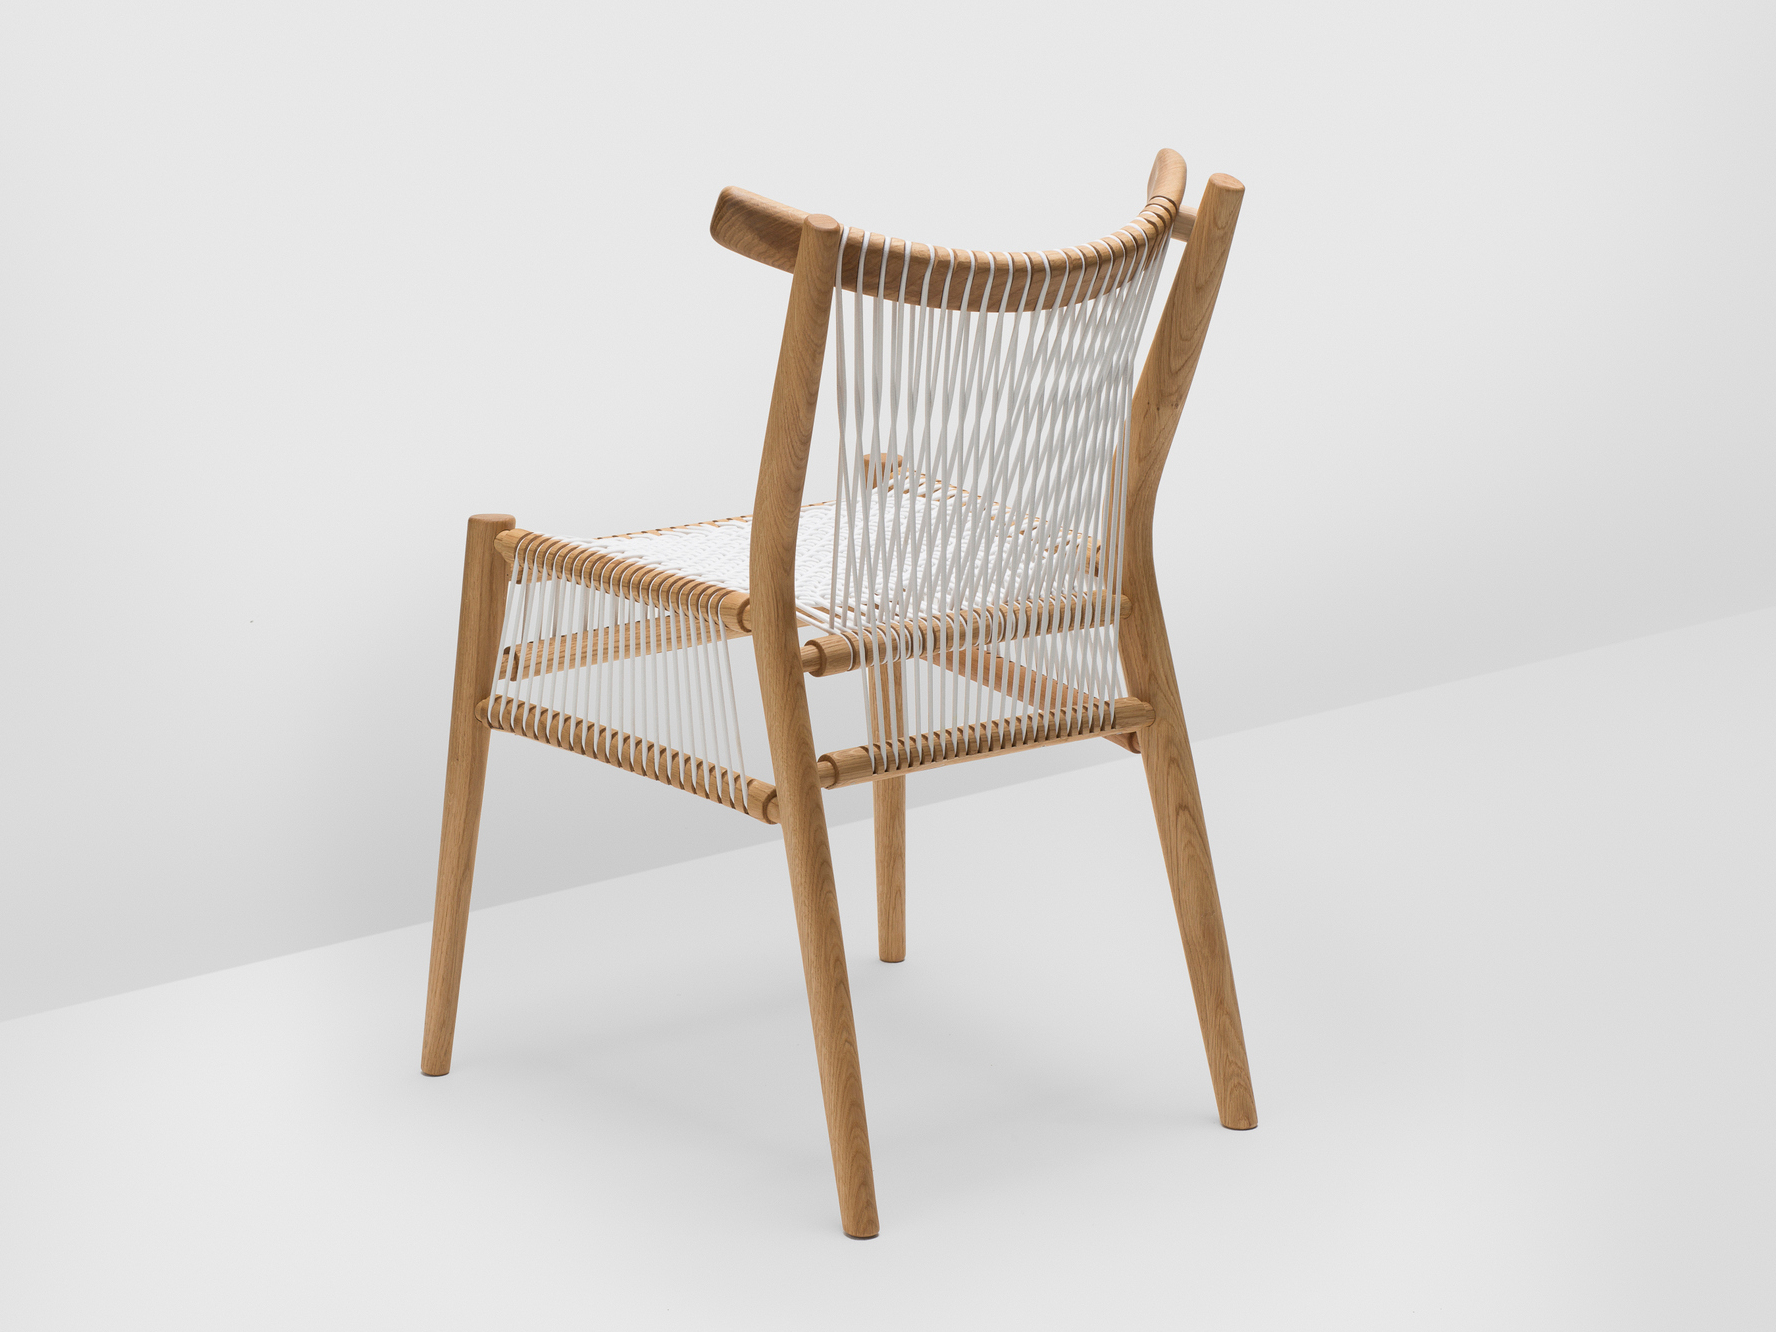 Loom oak chair loom collection by h furniture design hierve for H furniture collection loom